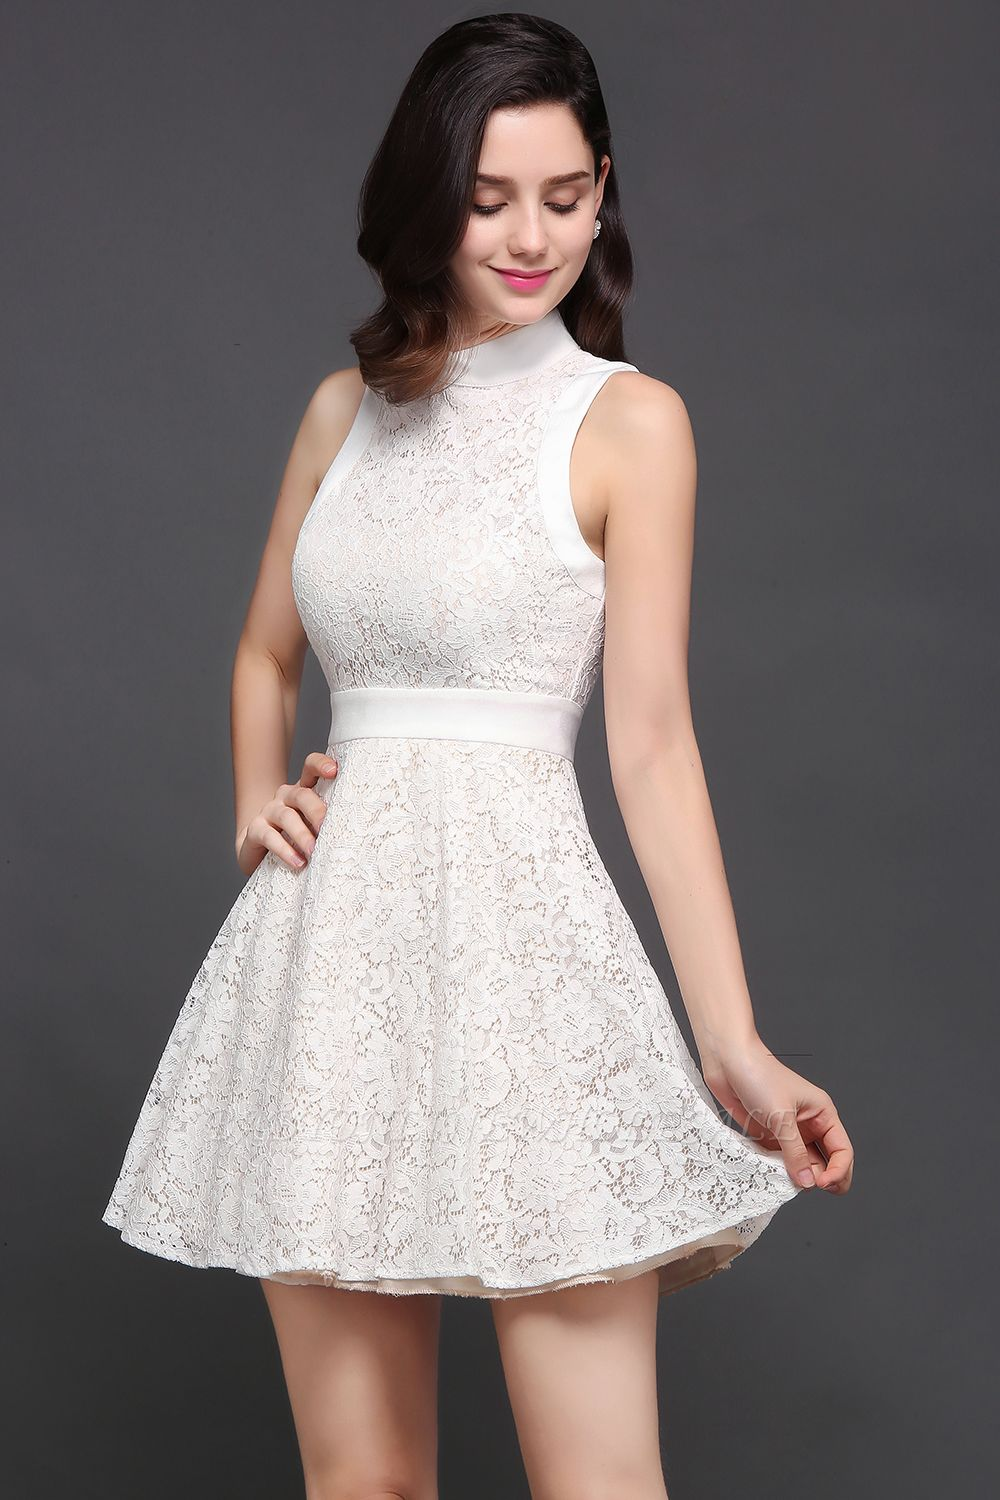 CHLOE | Princess High neck Knee-length White Cute Homecoming Dress